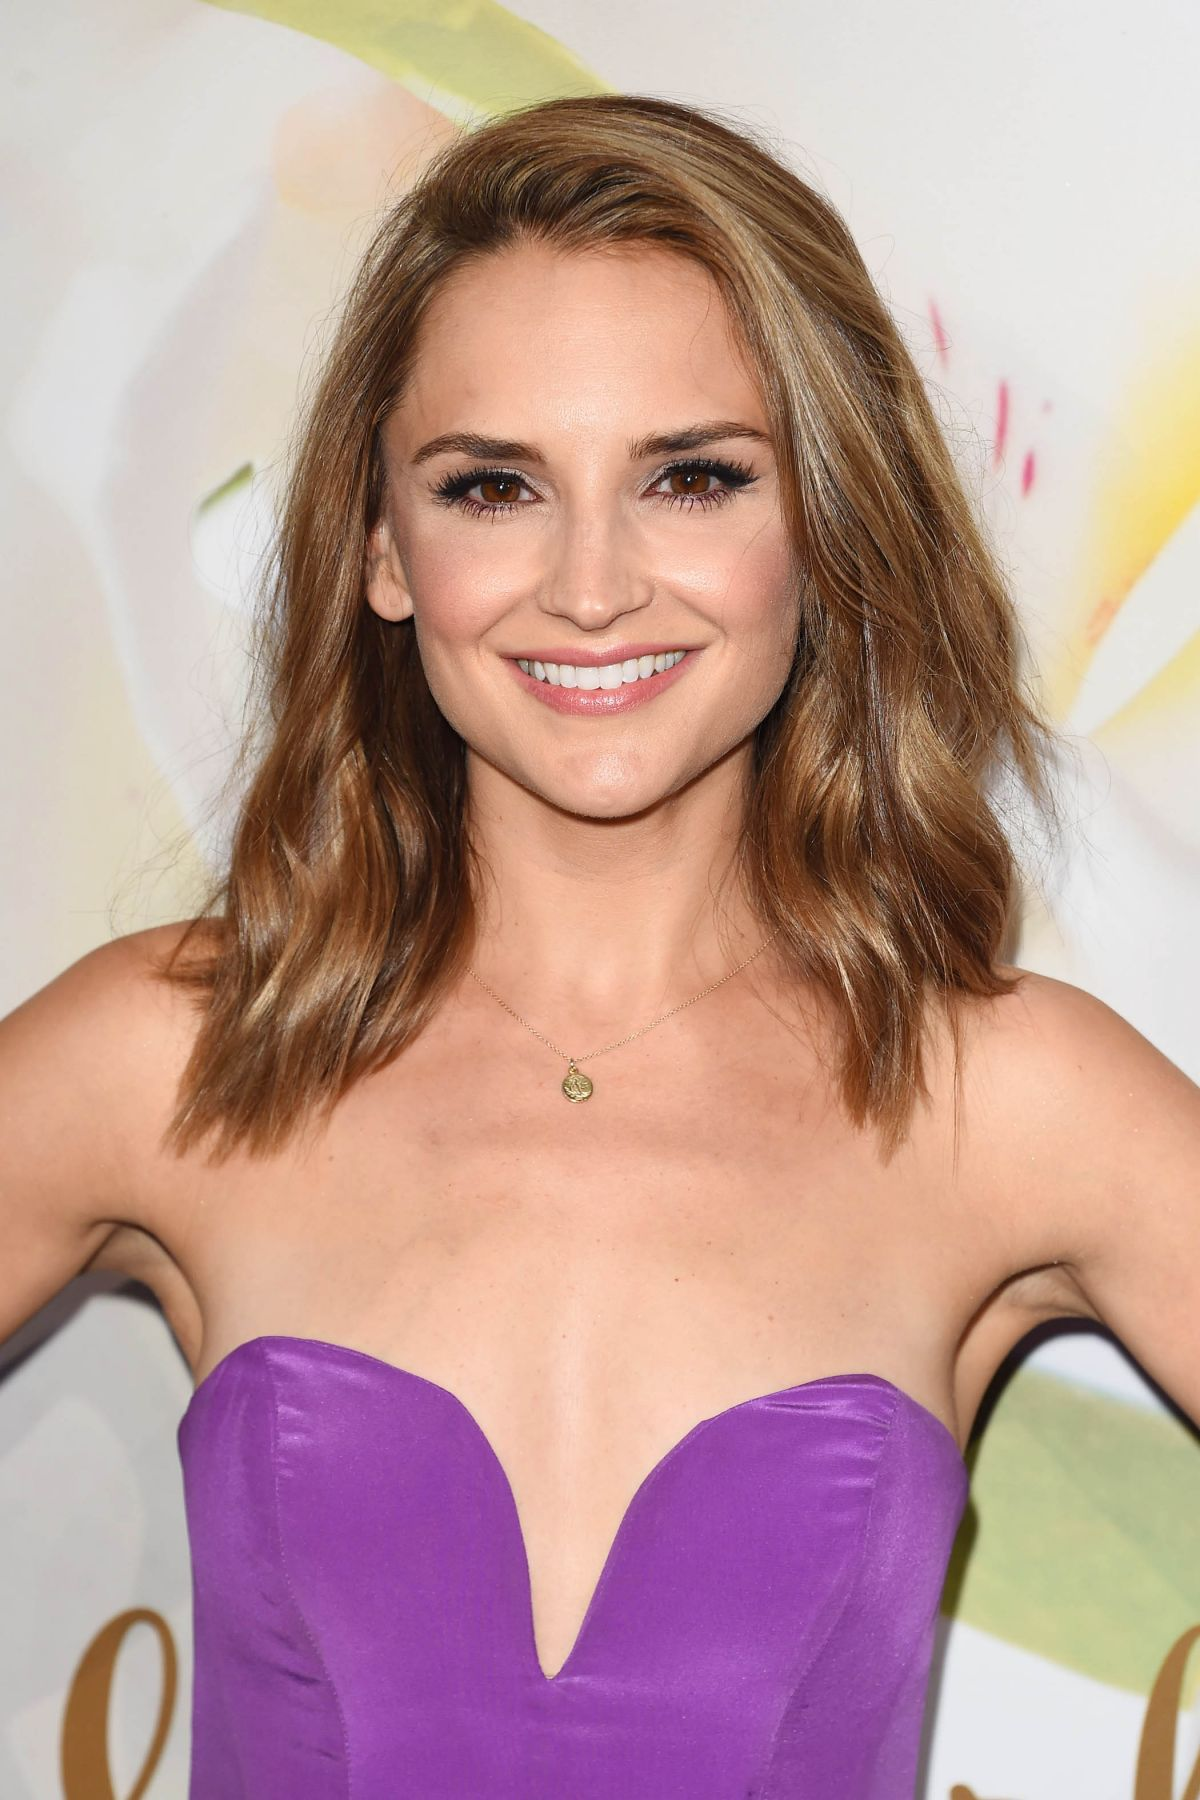 Pics Rachael Leigh Cook naked (21 photos), Pussy, Paparazzi, Twitter, cleavage 2019